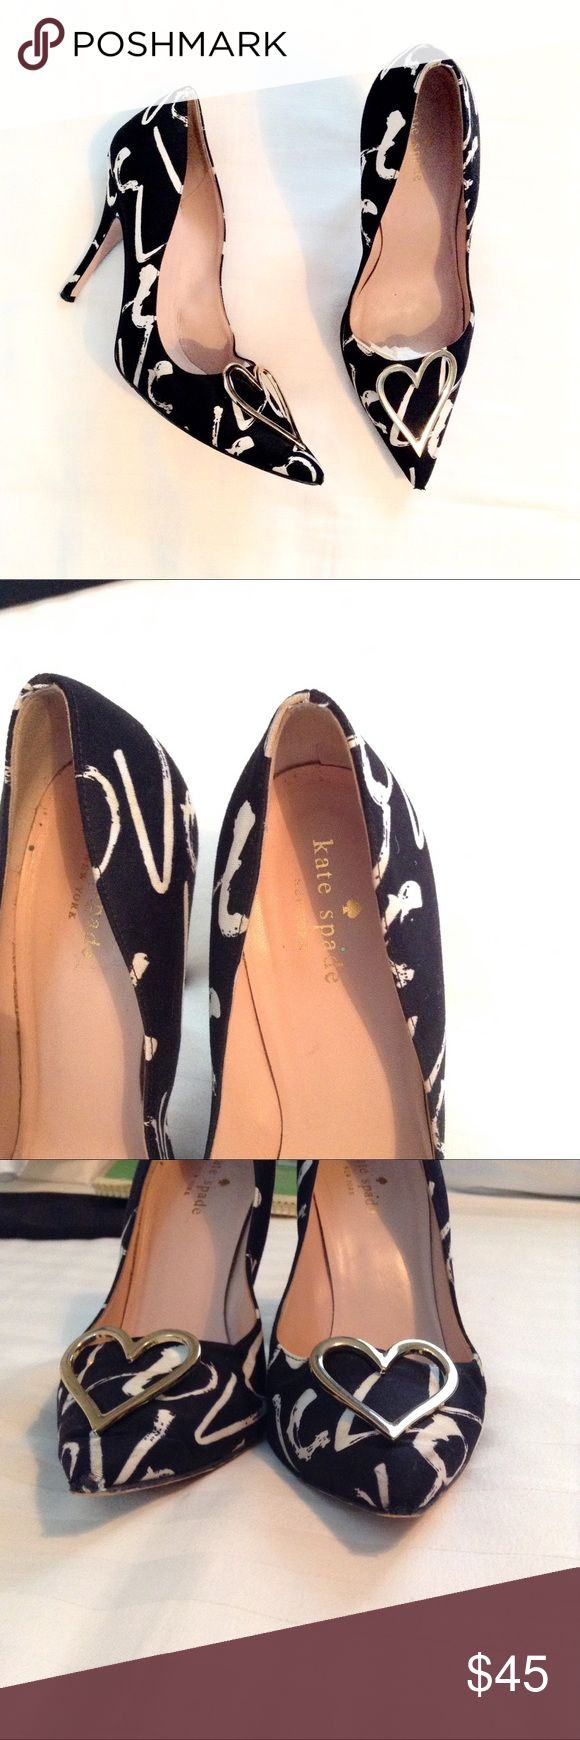 Kate Spade Graffiti Heart Pumps Good condition. The tips, heels , and soles are worn. Heel is 4 inches tall. Pointed toe design, with skinny pencil heel. Questions and offers are welcome 😊 kate spade Shoes Heels